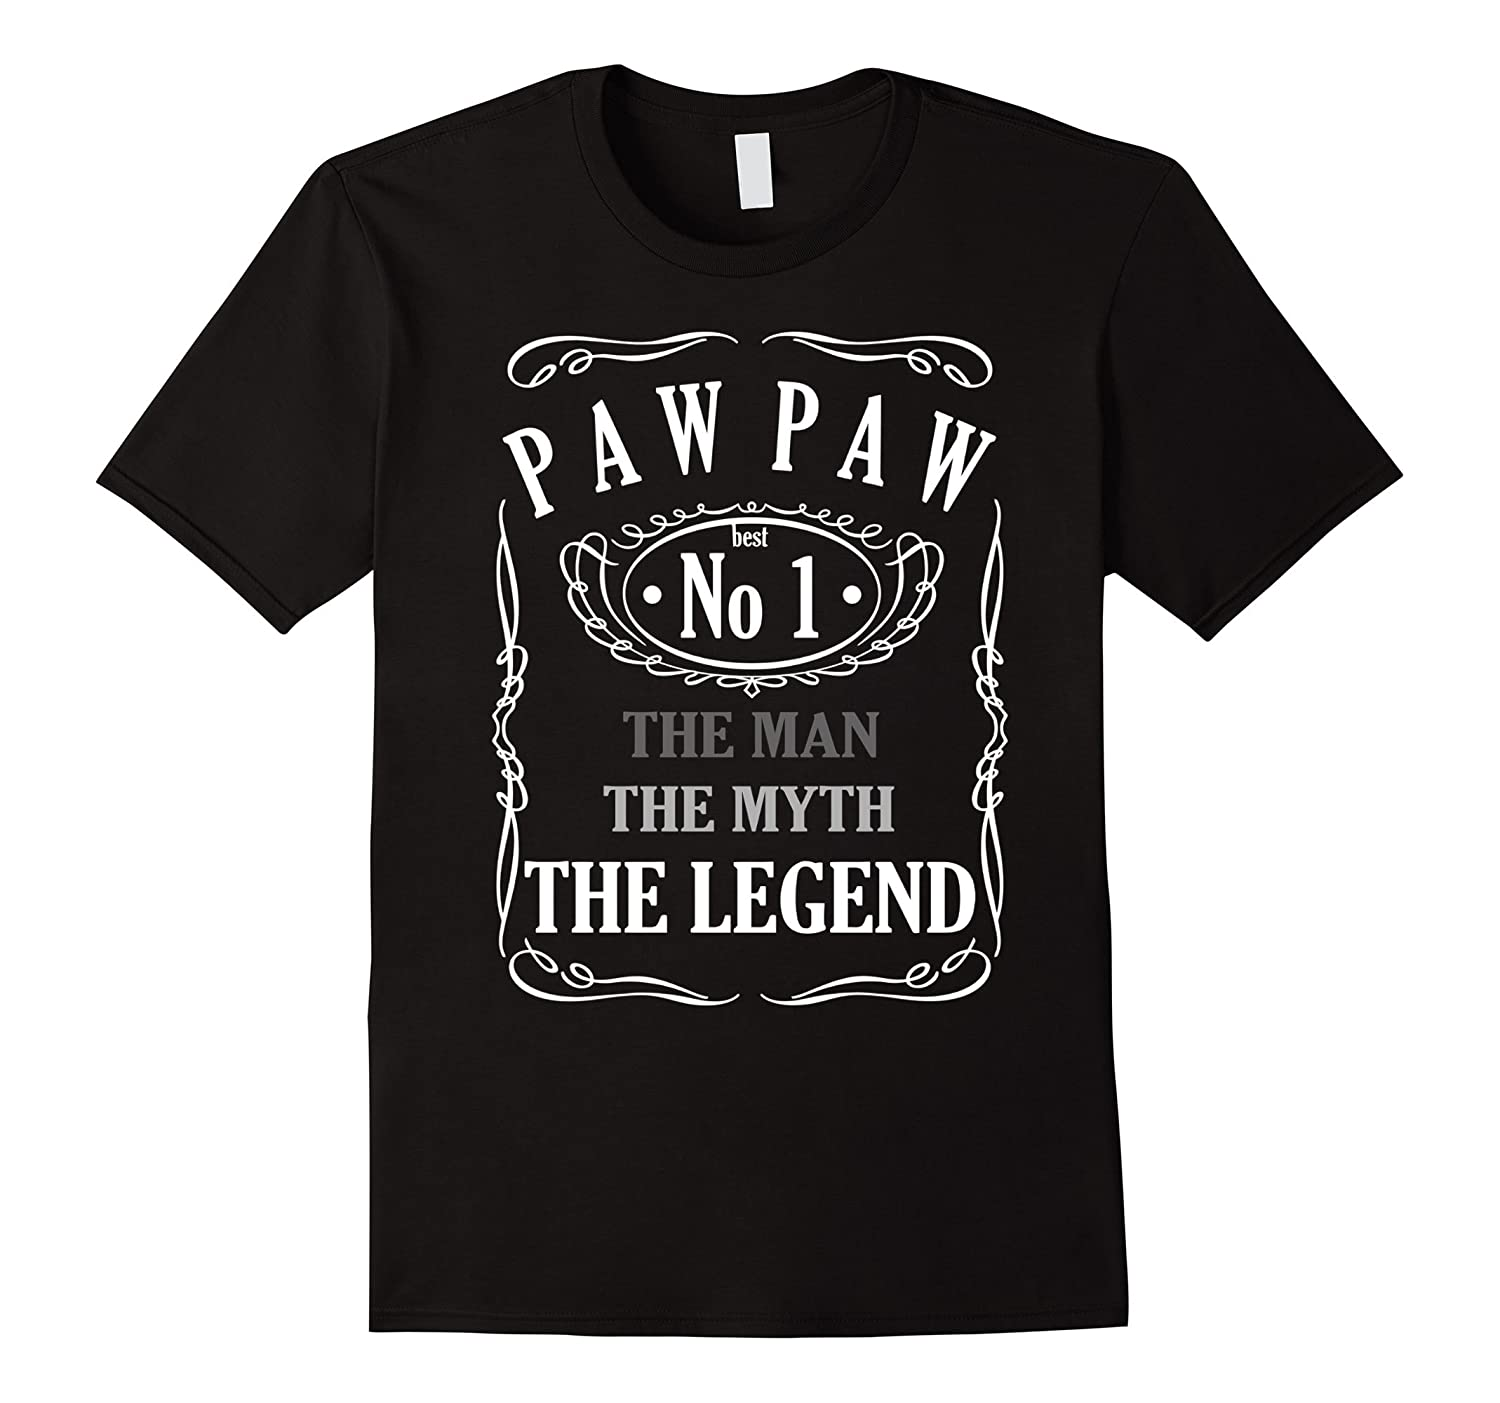 PAW PAW The Man The Myth The Legend T-Shirt-TD